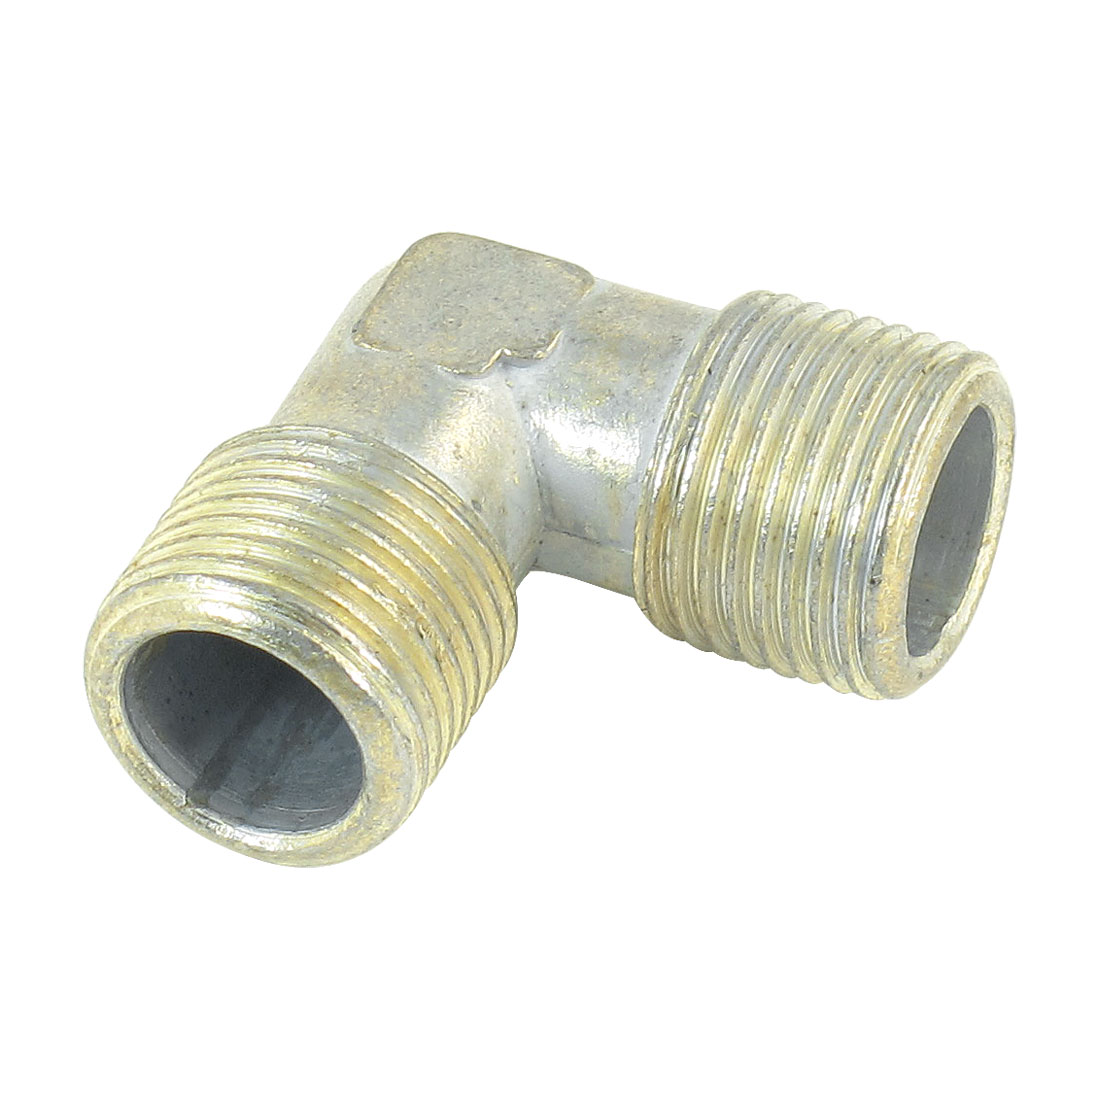 "3/8"" x 3/8"" 90 Degree Male to Male Equal Elbow Fuel Pipe Coupler Adapter"